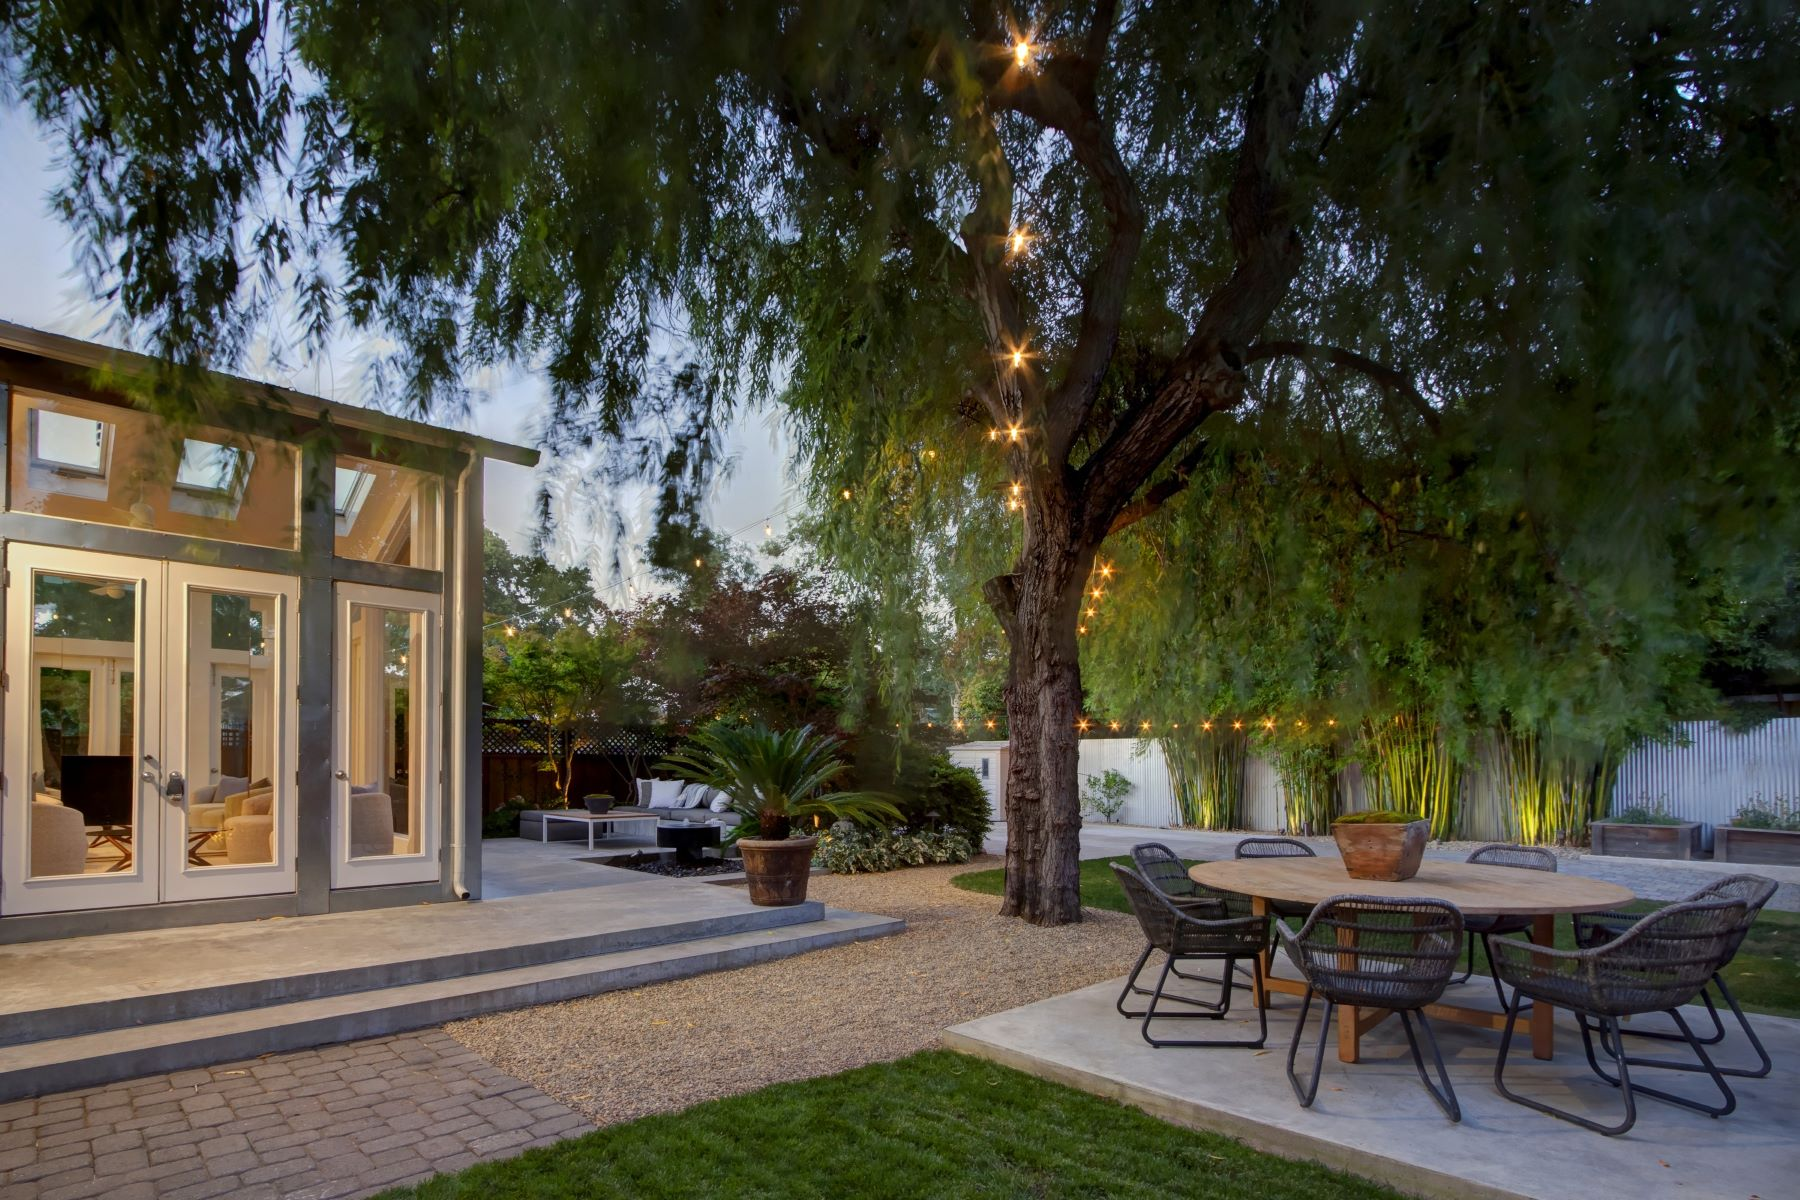 Single Family Homes for Active at Stunning Remodeled Contemporary Home 108 Randolph Street Napa, California 94559 United States